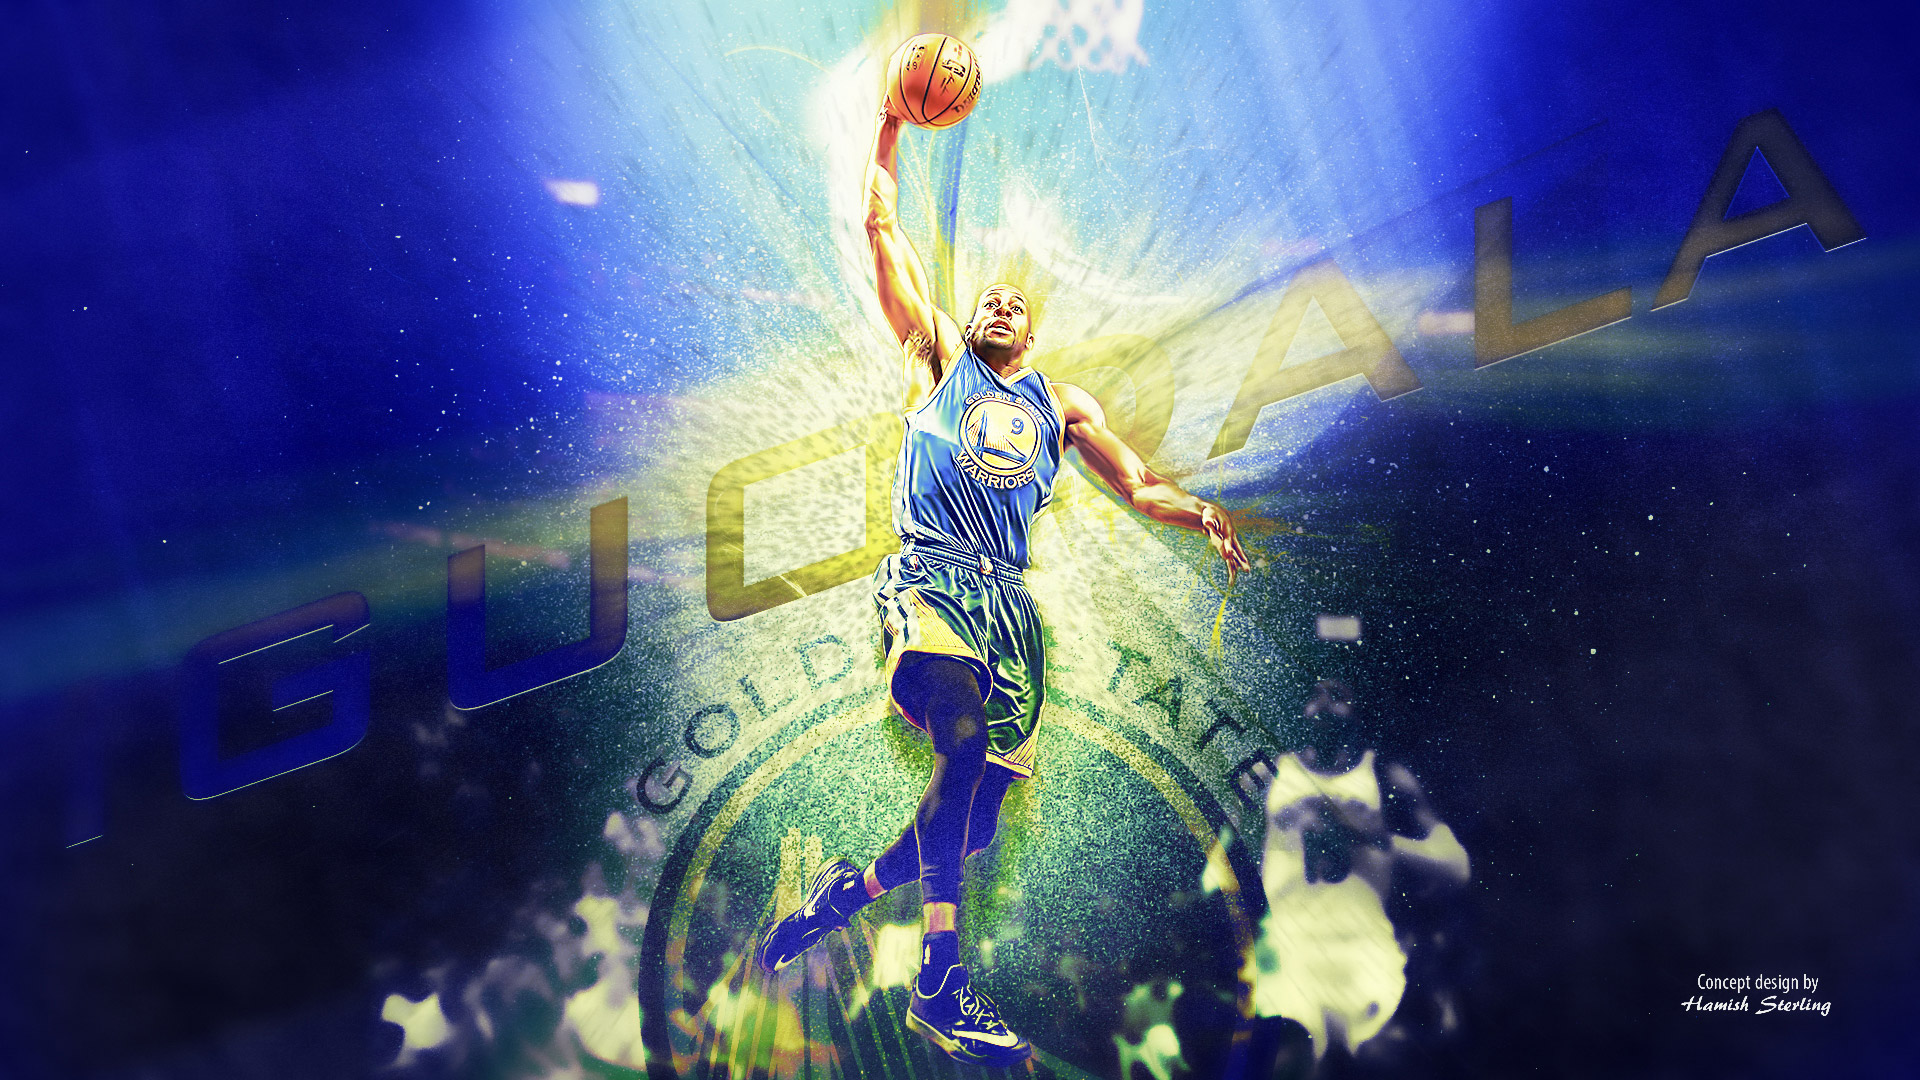 Andre Iguodala 2016 NBA Finals Wallpaper